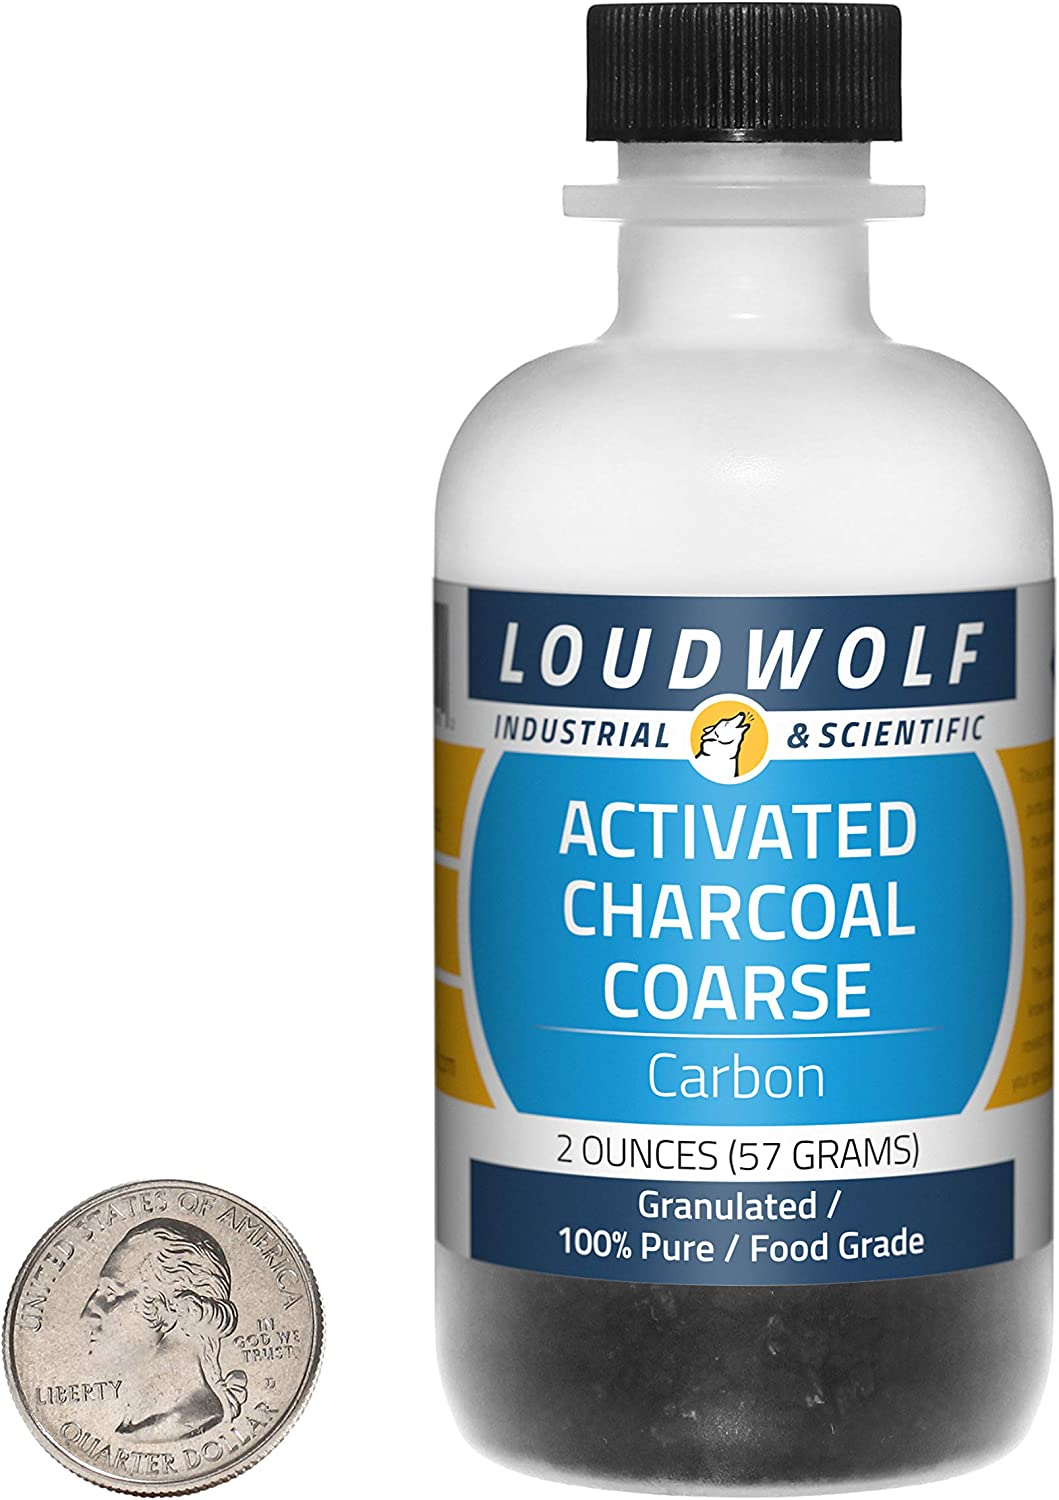 Activated Charcoal / 2 Ounce Bottle / 100% Pure Food Grade/Granulated/USA